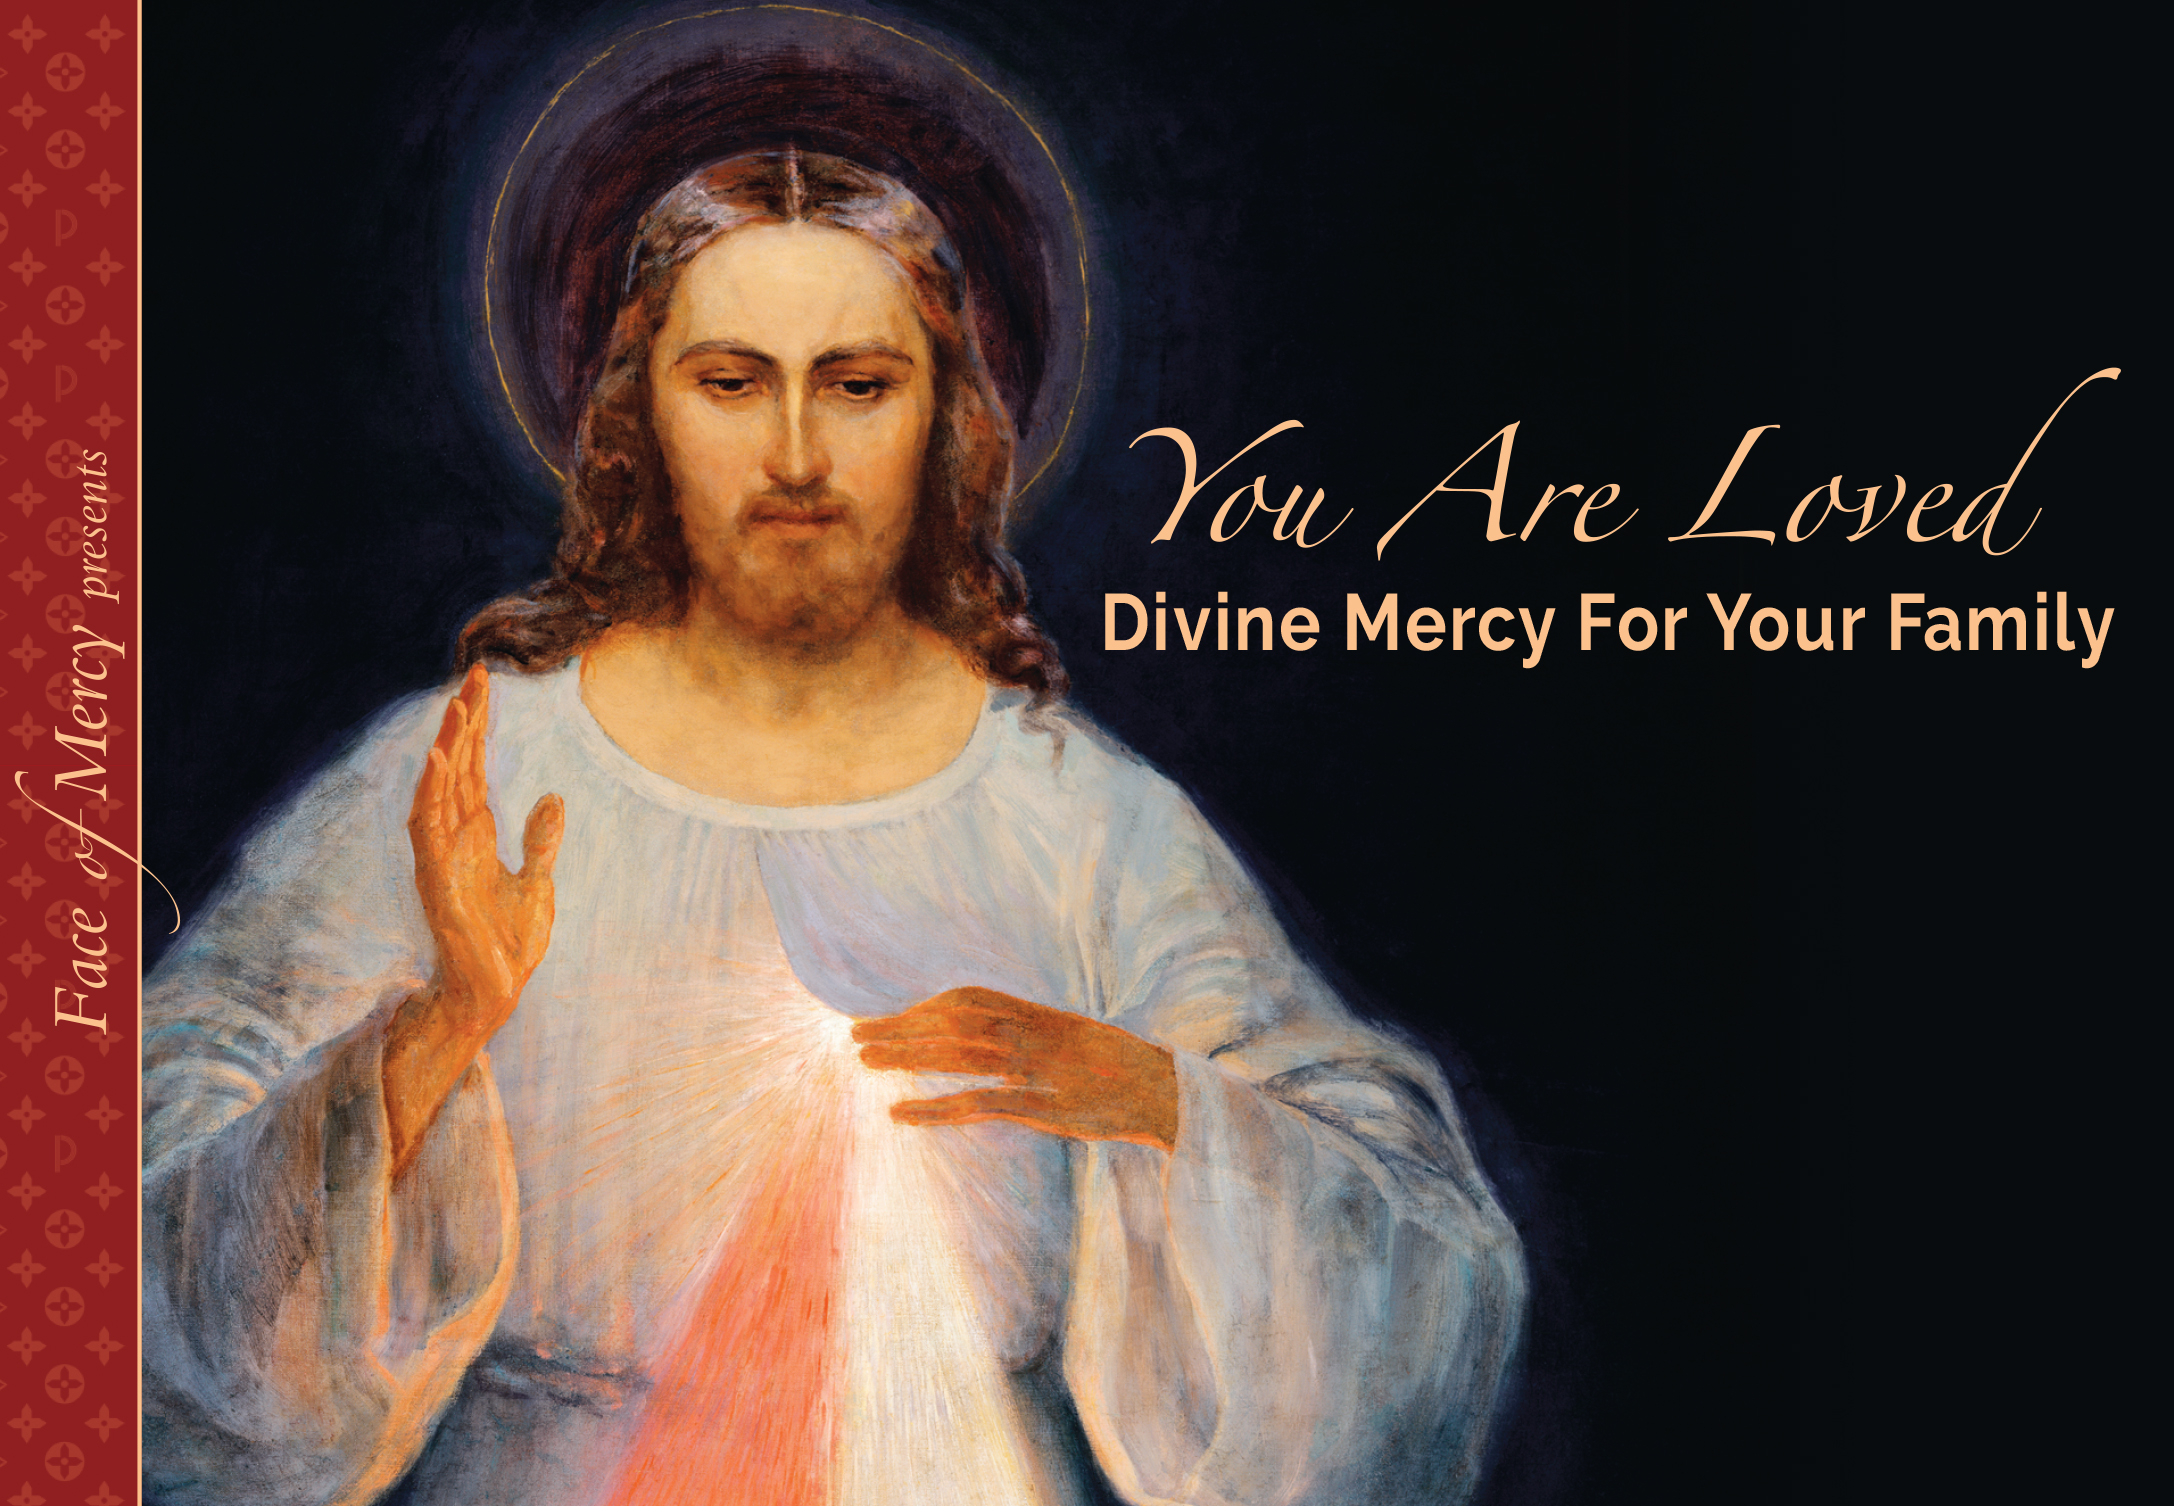 Divine Mercy For Today's Families Booklet copy_Page_01.jpg